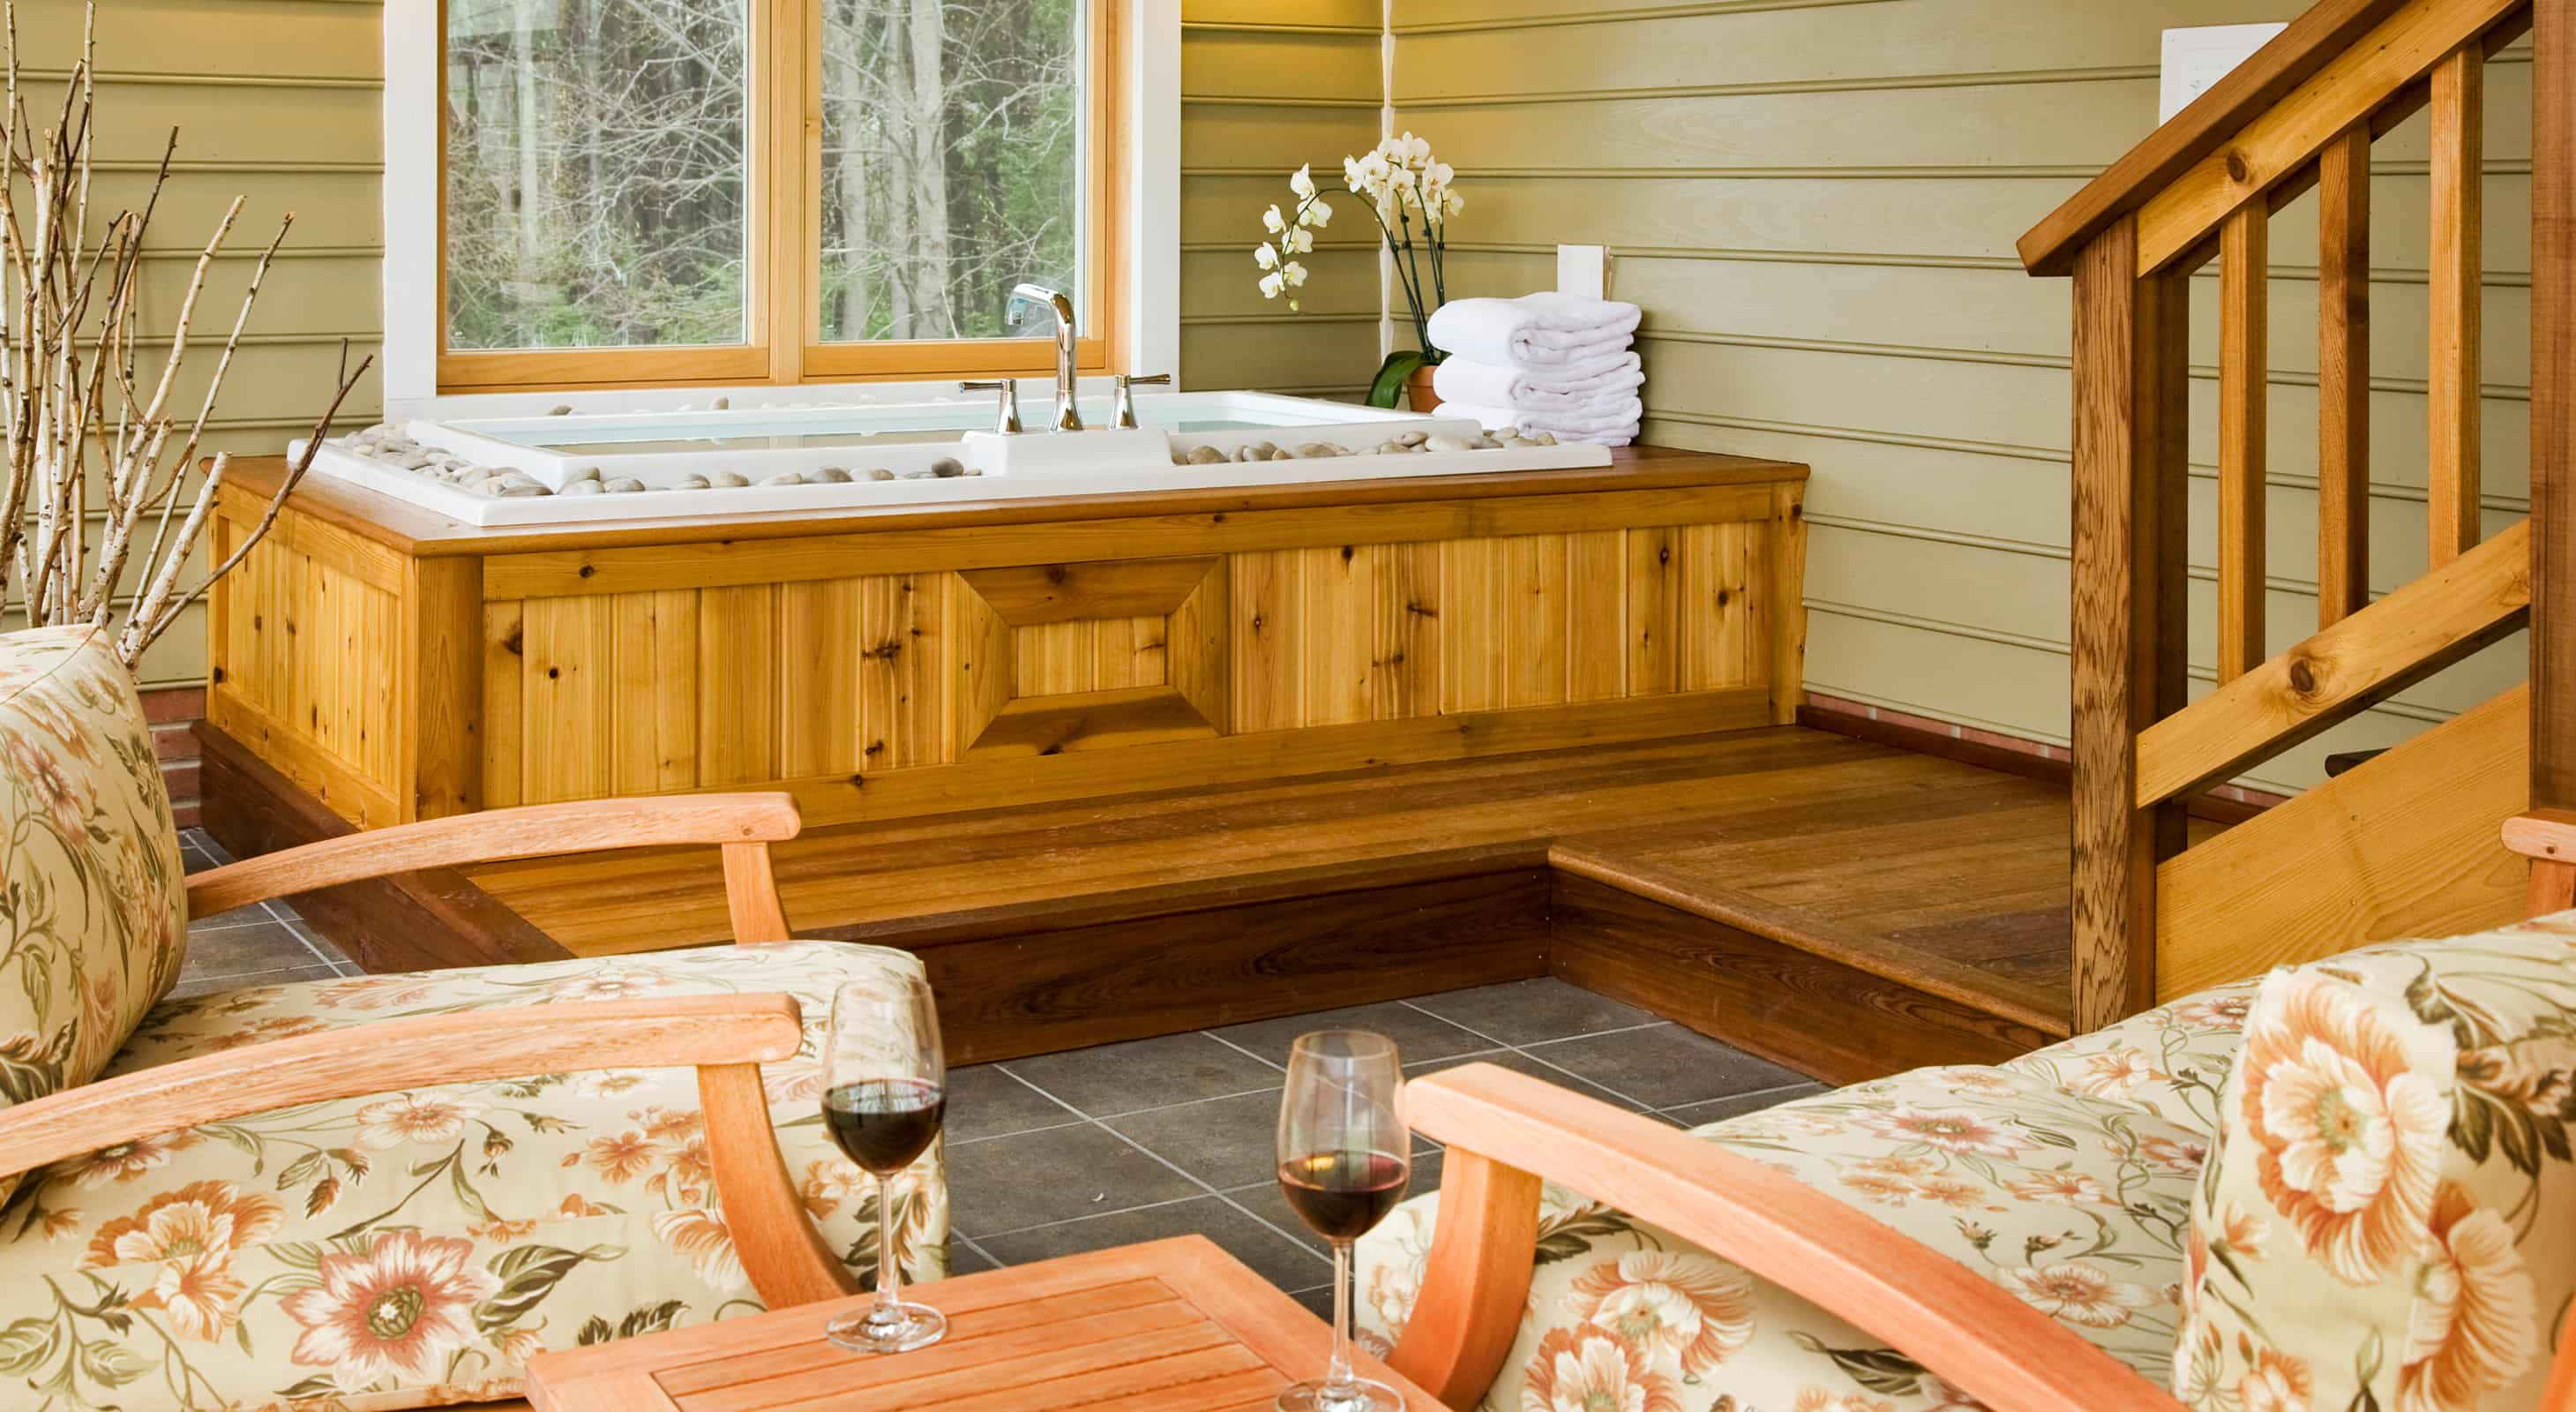 Mulberry Cottage tub and seating area with wine